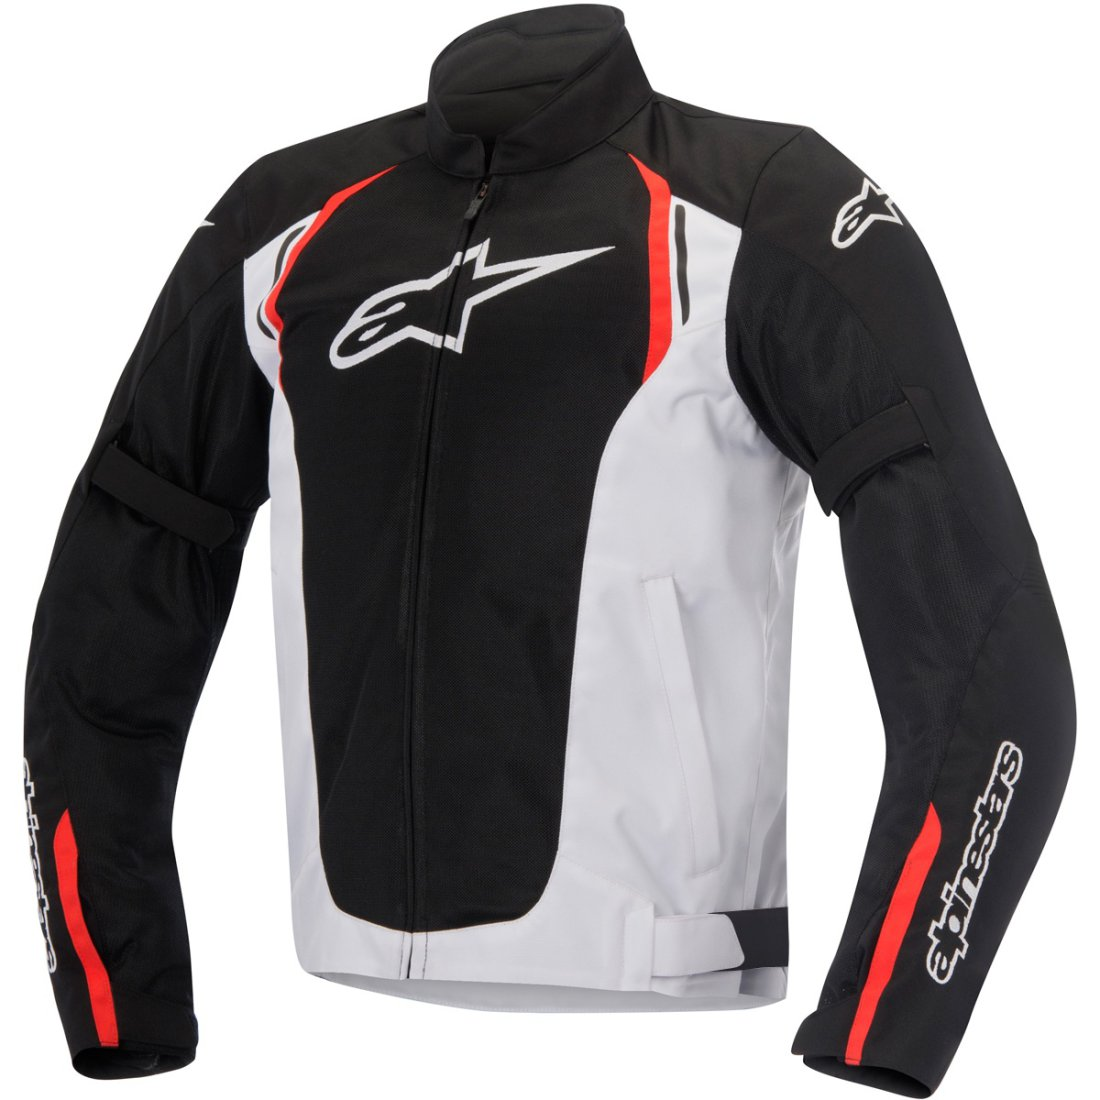 Chaqueta moto mujer alpinestar outlet